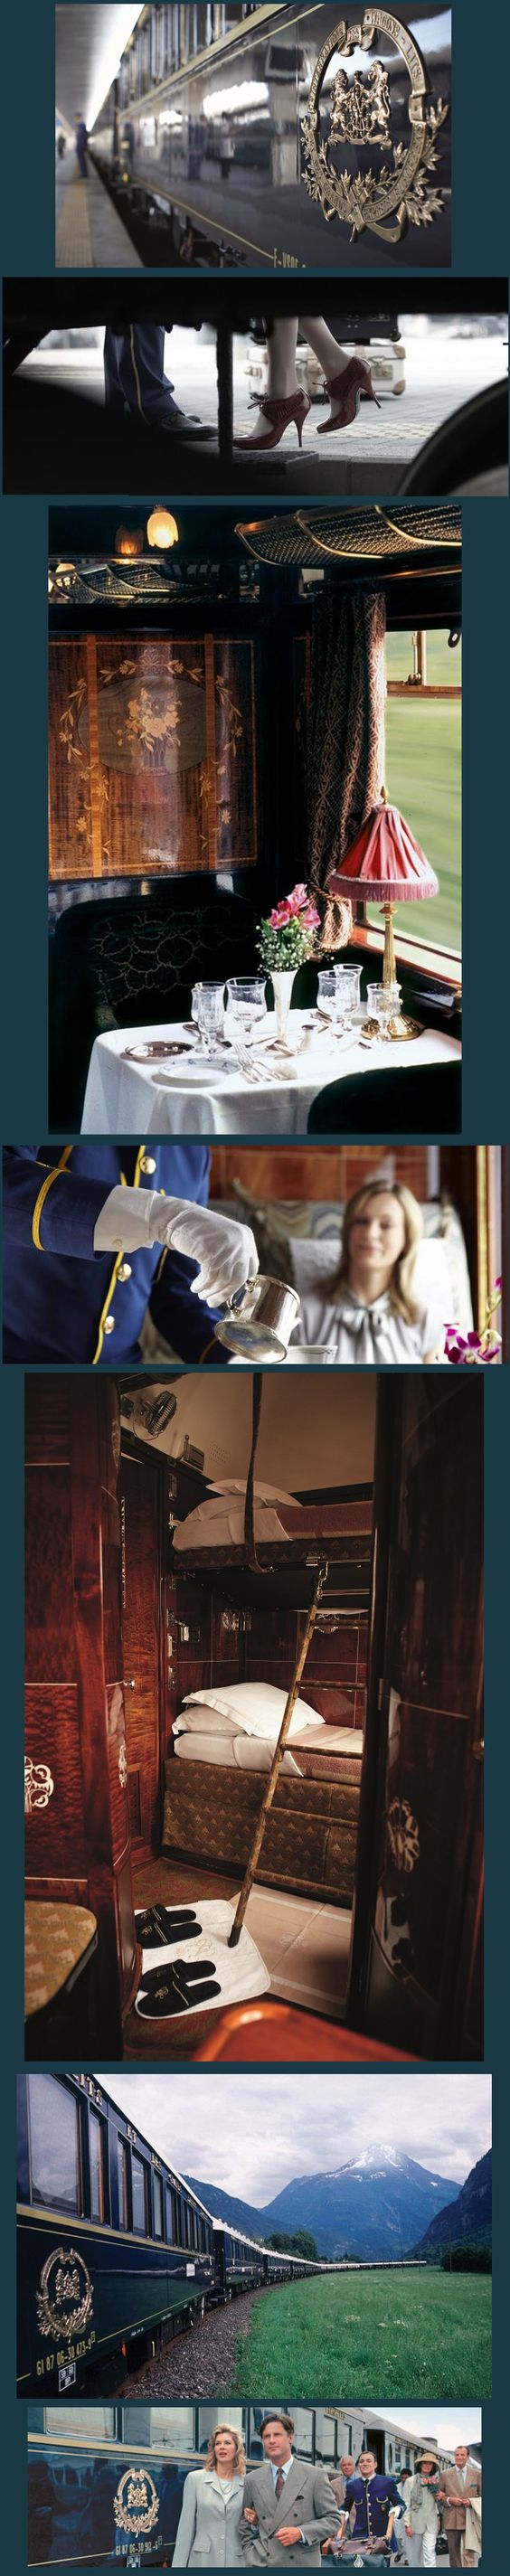 """Venice Simplon-Orient-Express, """"Rich in history & draped in elegance, the legendary Venice Simplon-Orient-Express  """"The train against which all other luxury trains are measured"""" -Vanity Fair"""